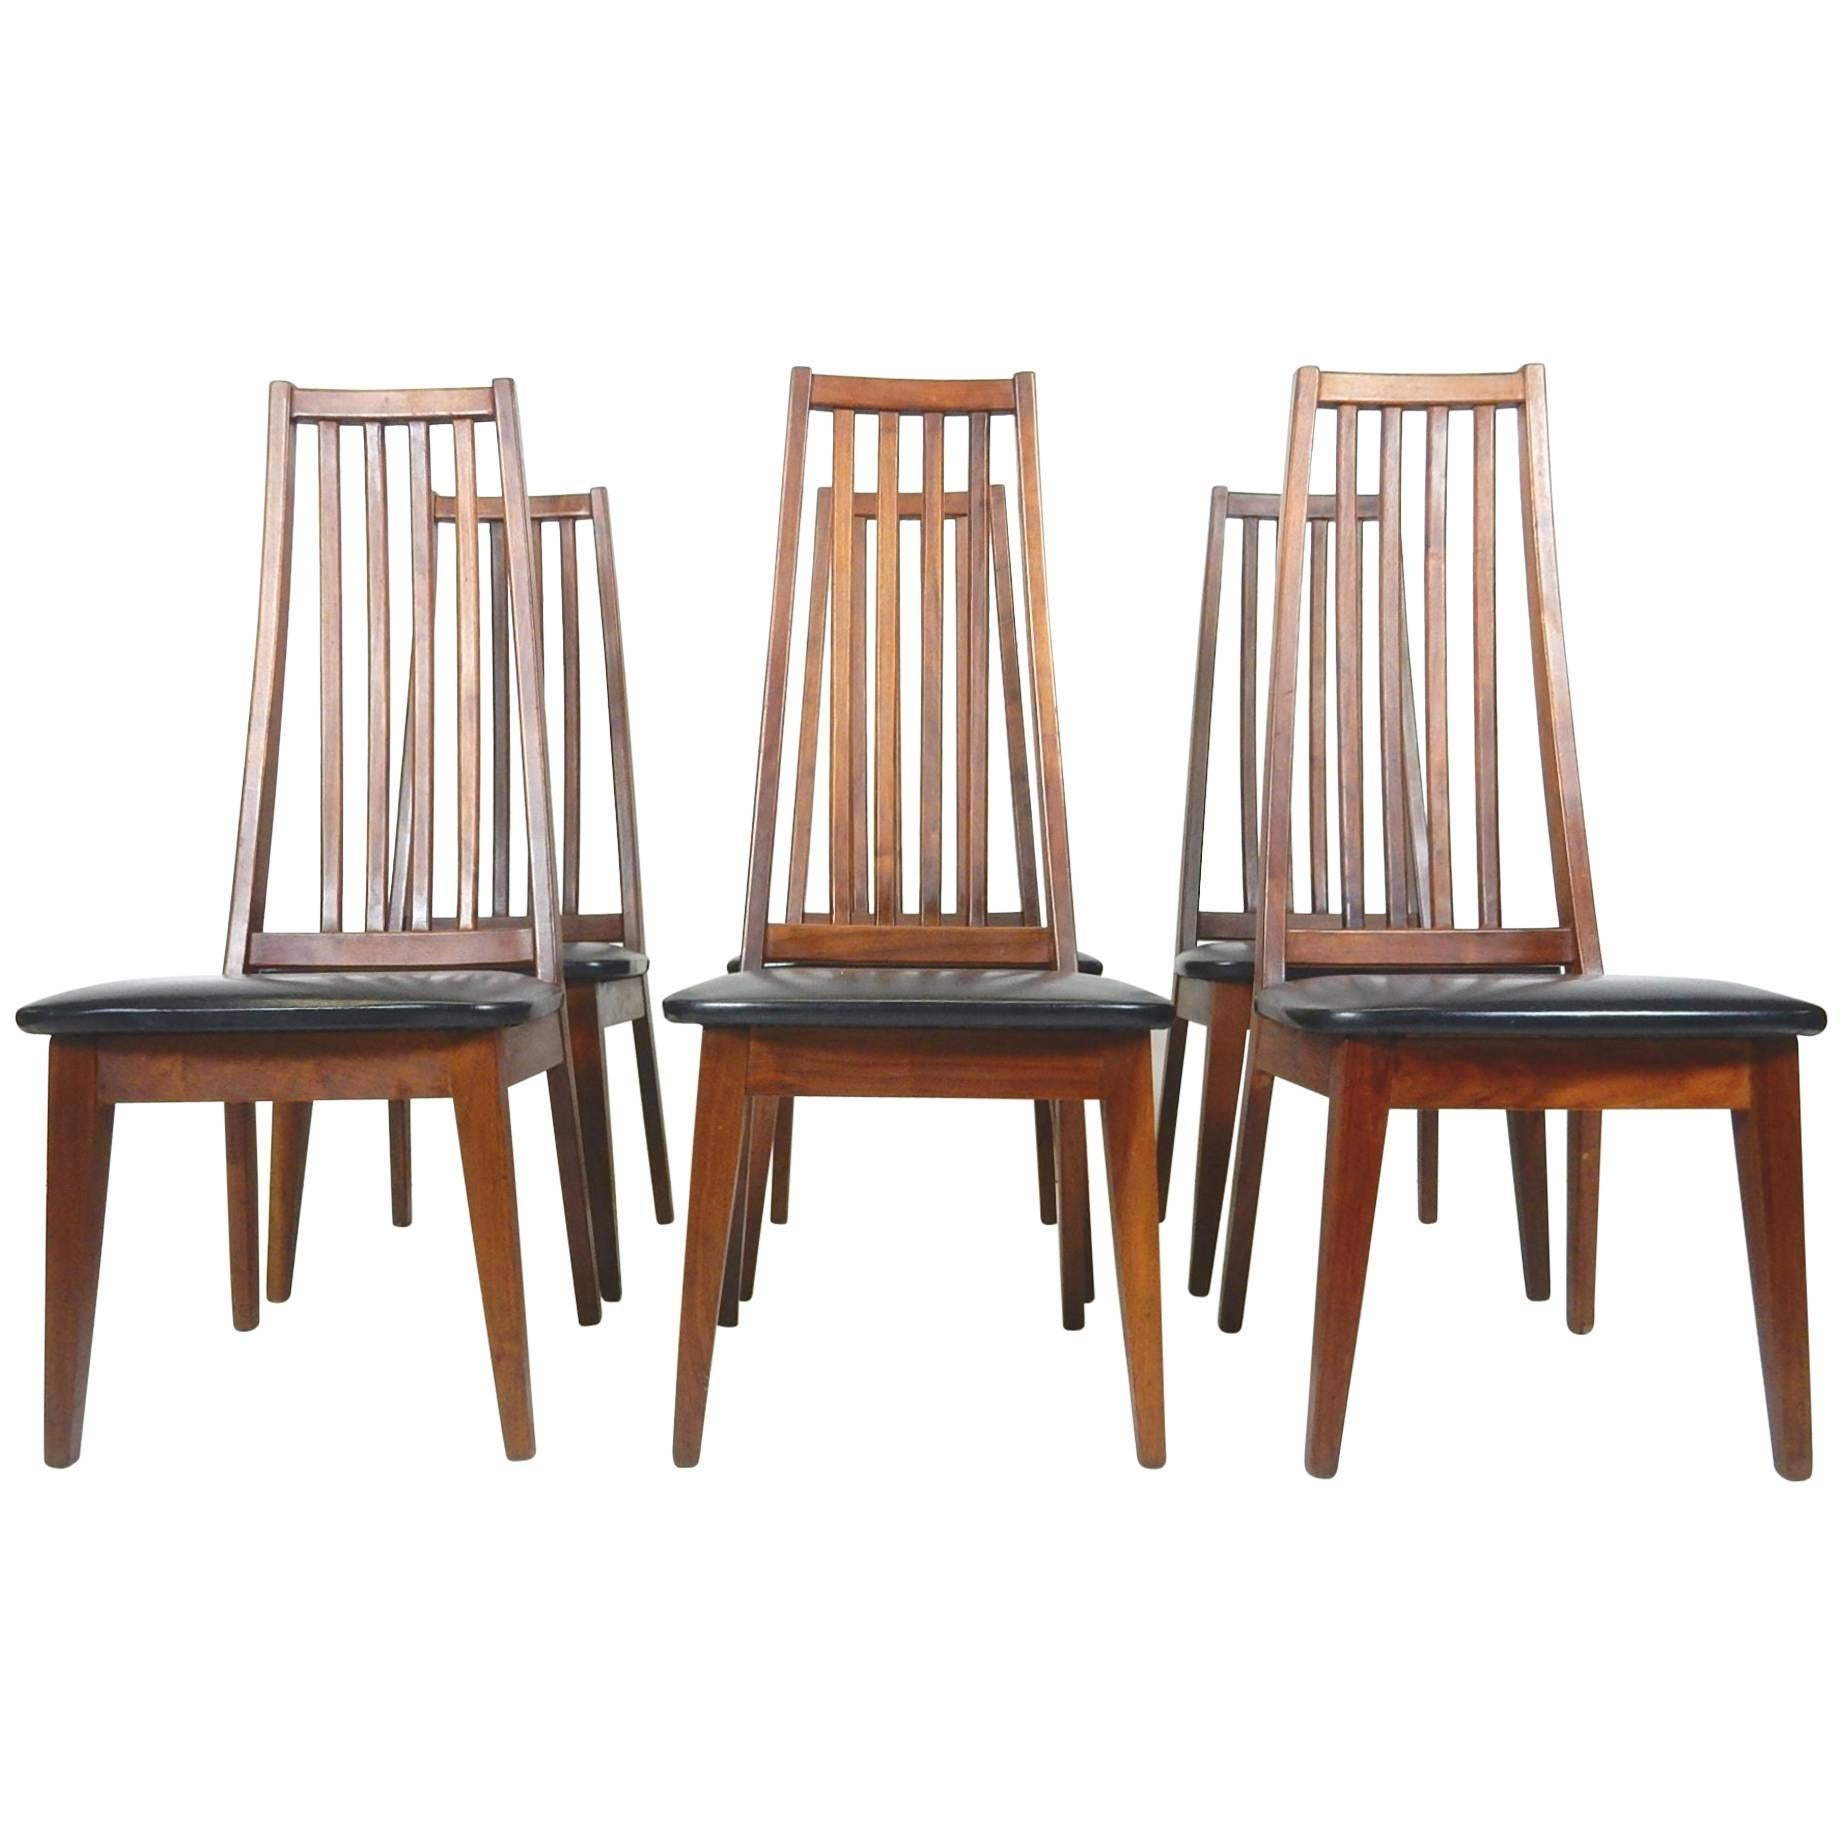 Midcentury Danish Modern Tall Teak Wood Spindle Back Dining Chairs For Sale